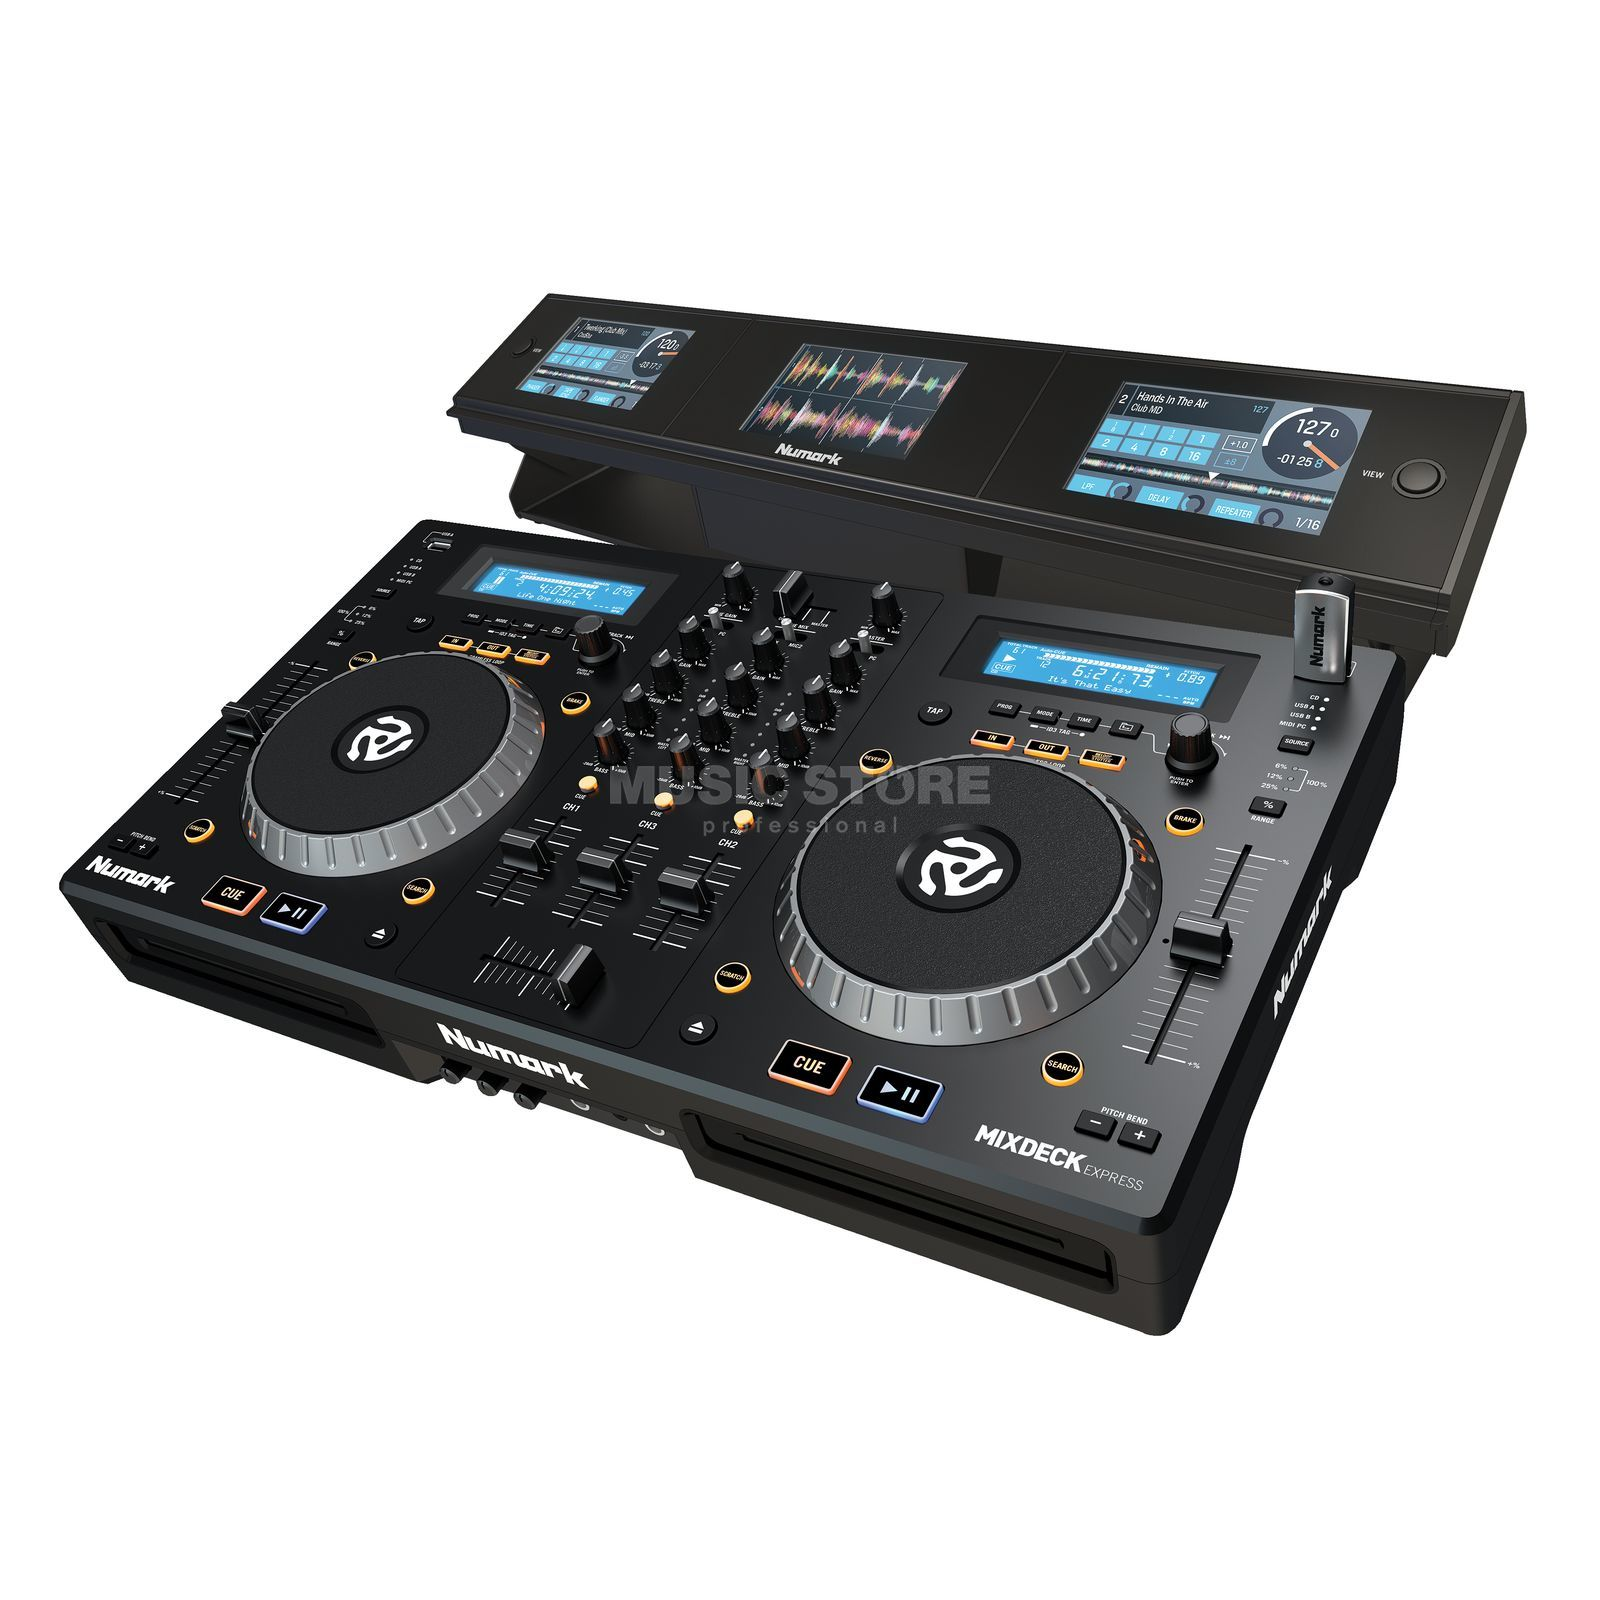 SET Numark Mixdeck Express Black incl. Dashboard Image du produit